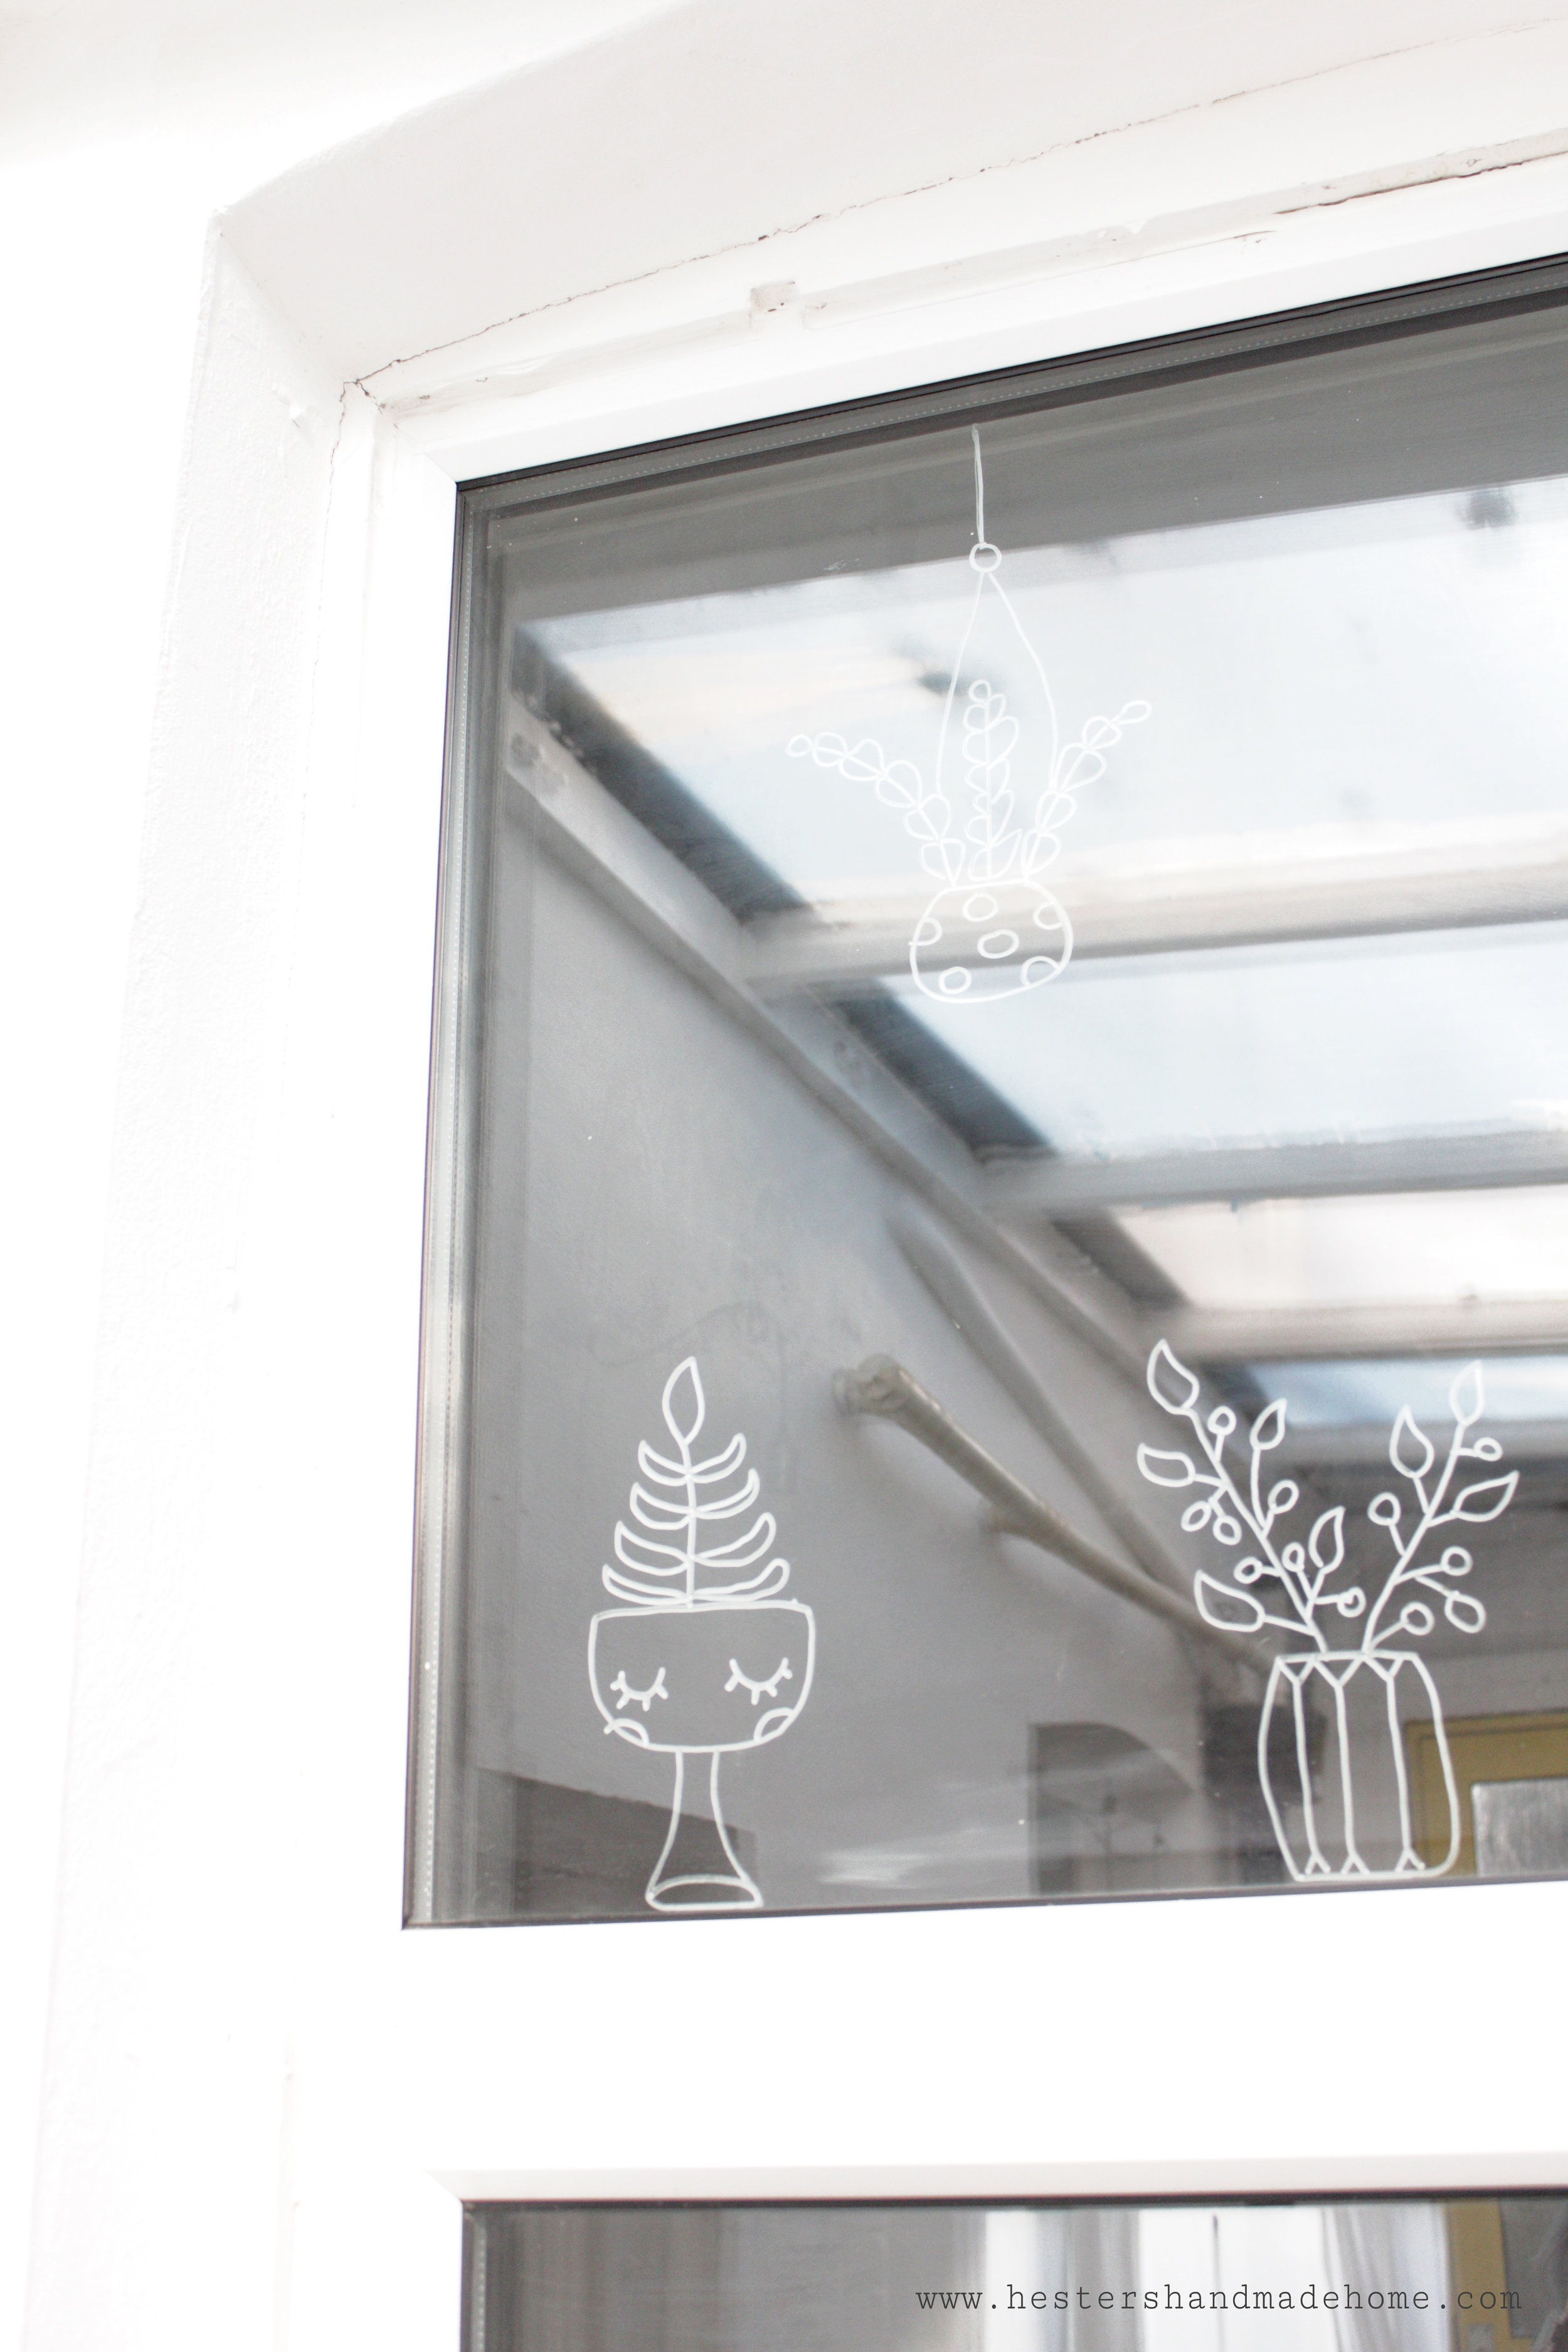 decorate your windows with chalk marker, tutorial by Hesters Handmade Home